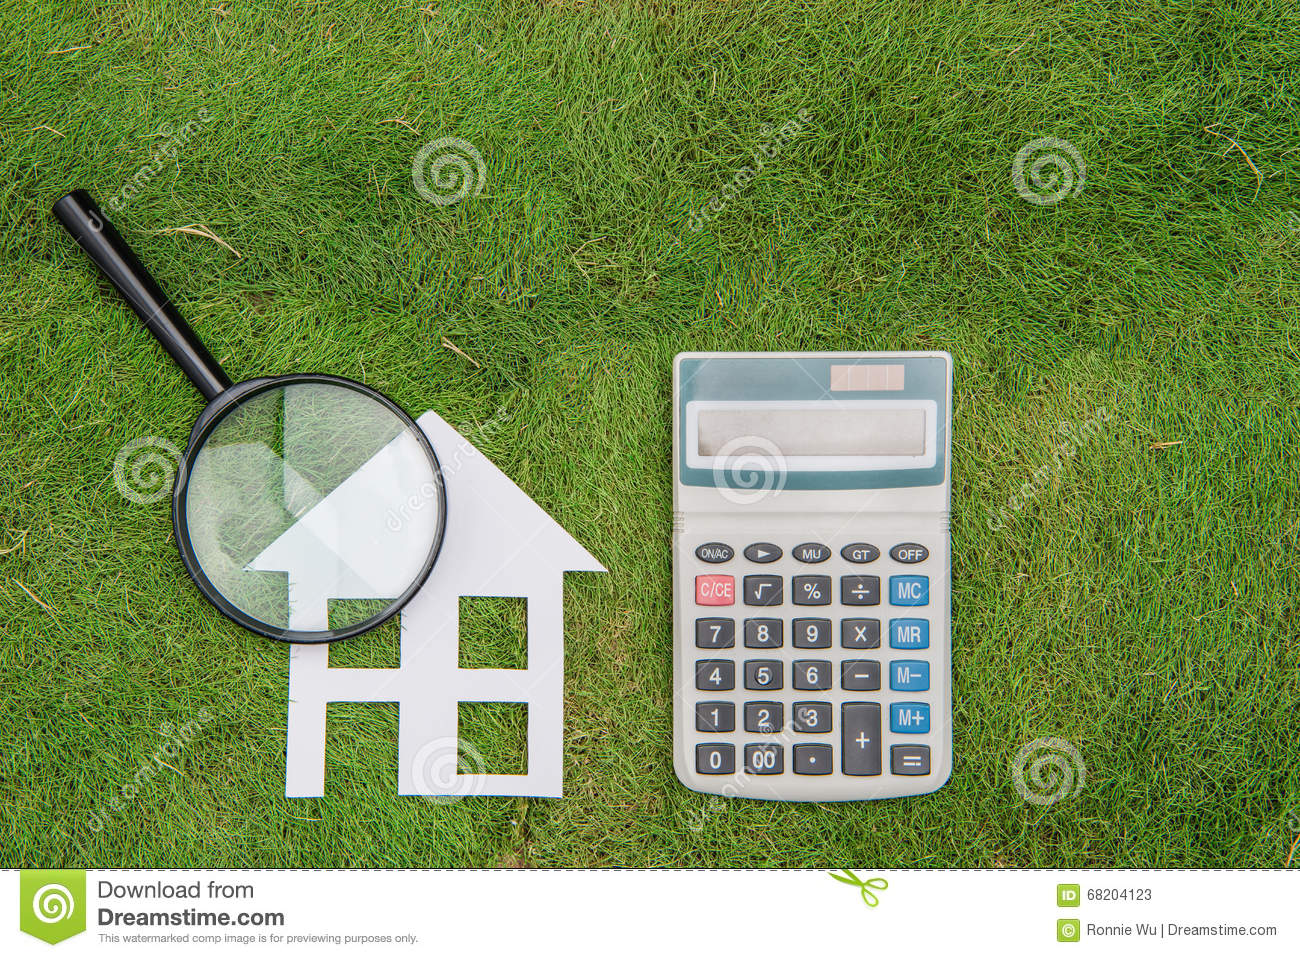 buy green building house mortgage calculations calculator